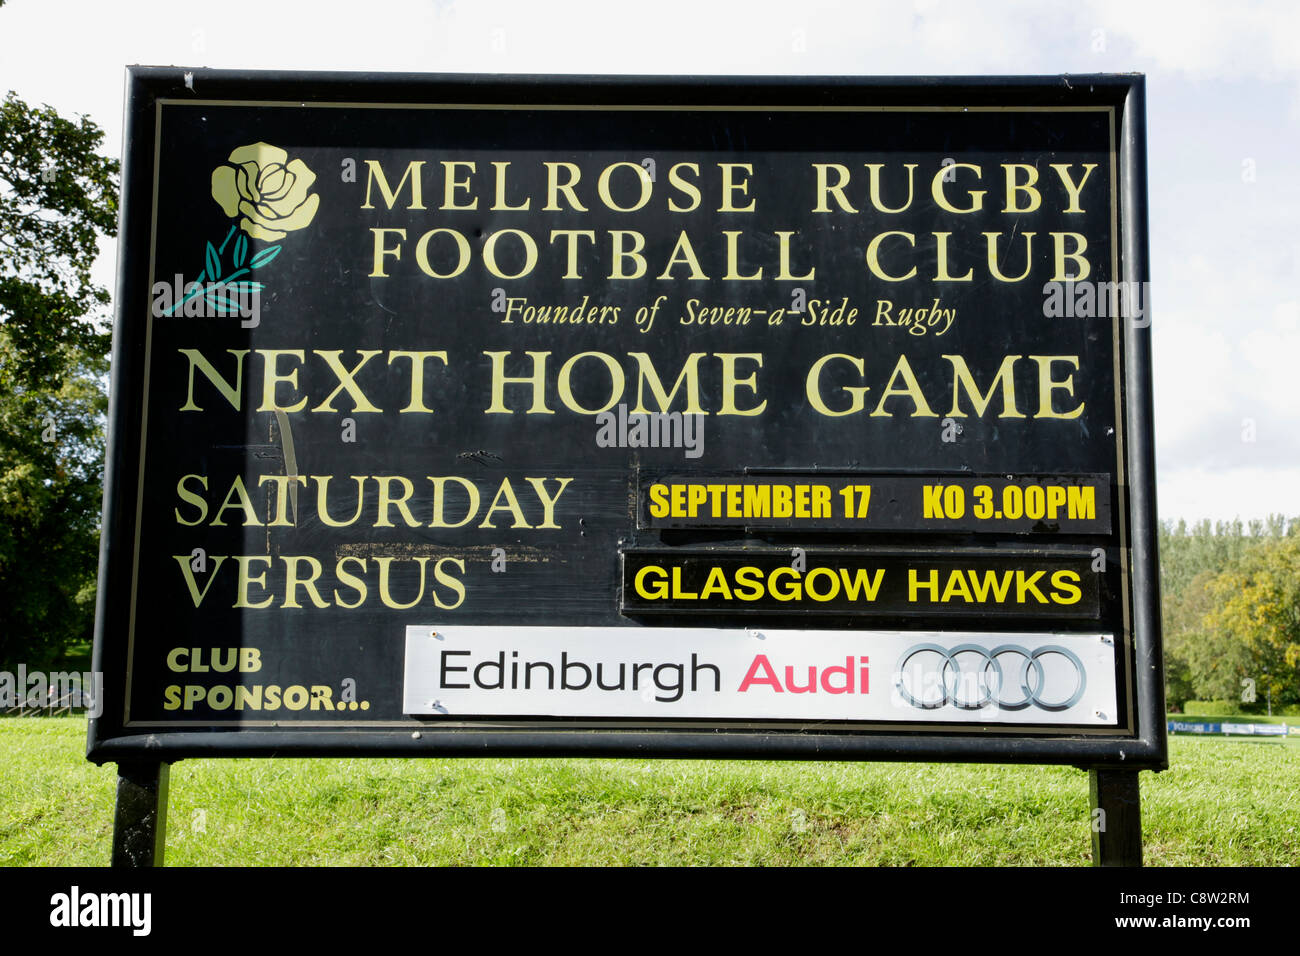 Fixture board at Melrose Rugby Football Club Scottish Borders - Stock Image